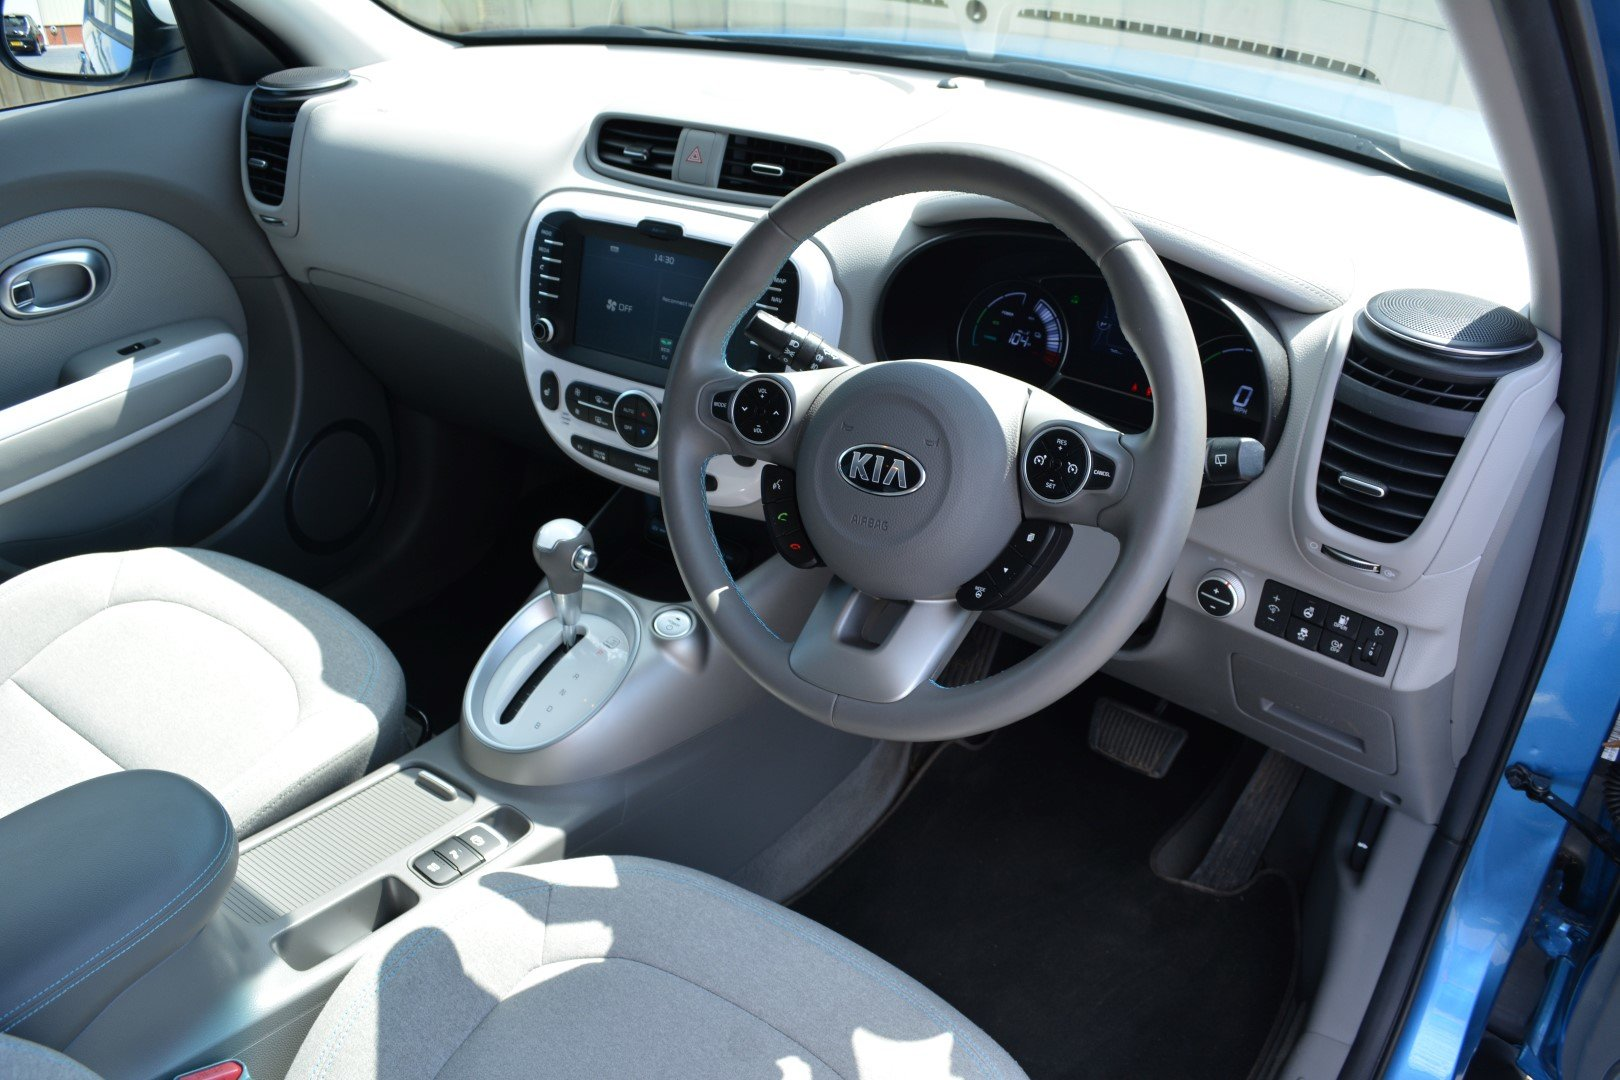 2018 Kia Soul EV Fully Electric - Practical Space - Great Range For Sale (picture 3 of 6)